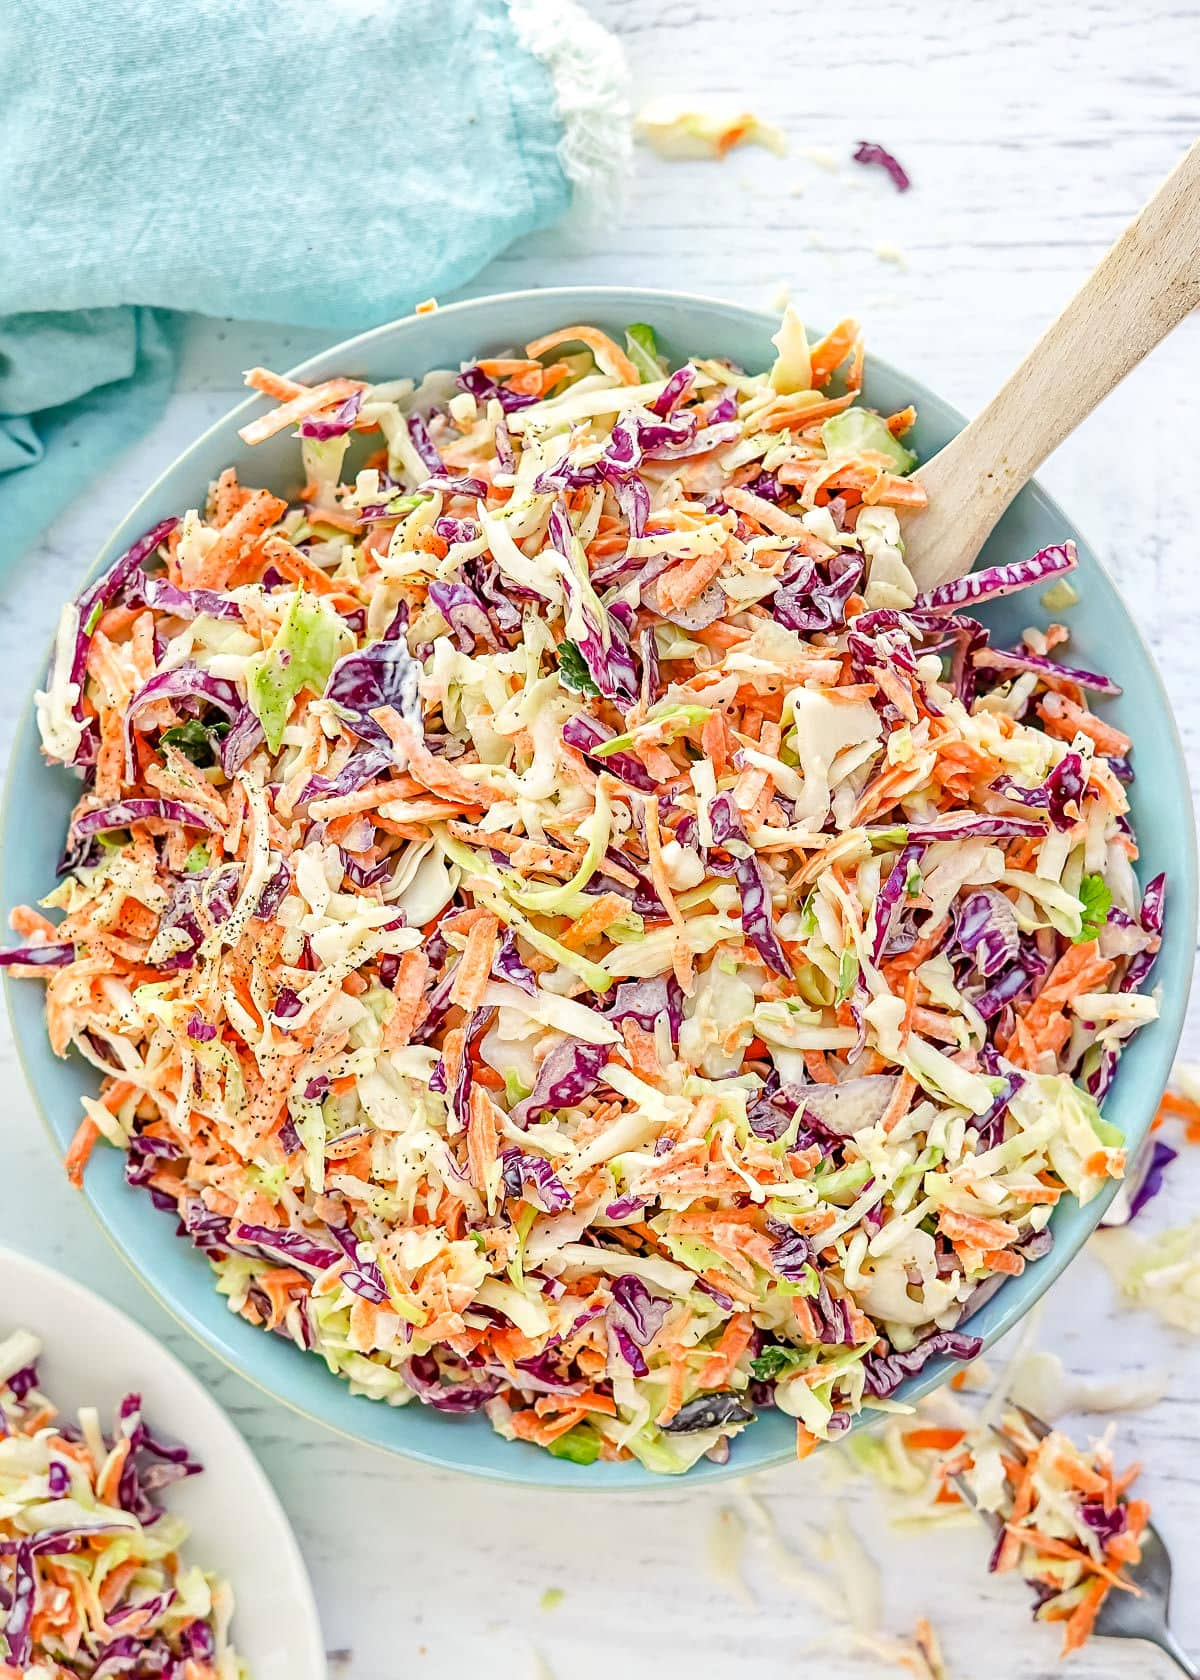 coleslaw prepared in a light blue bowl with wood spoon in the bowl.